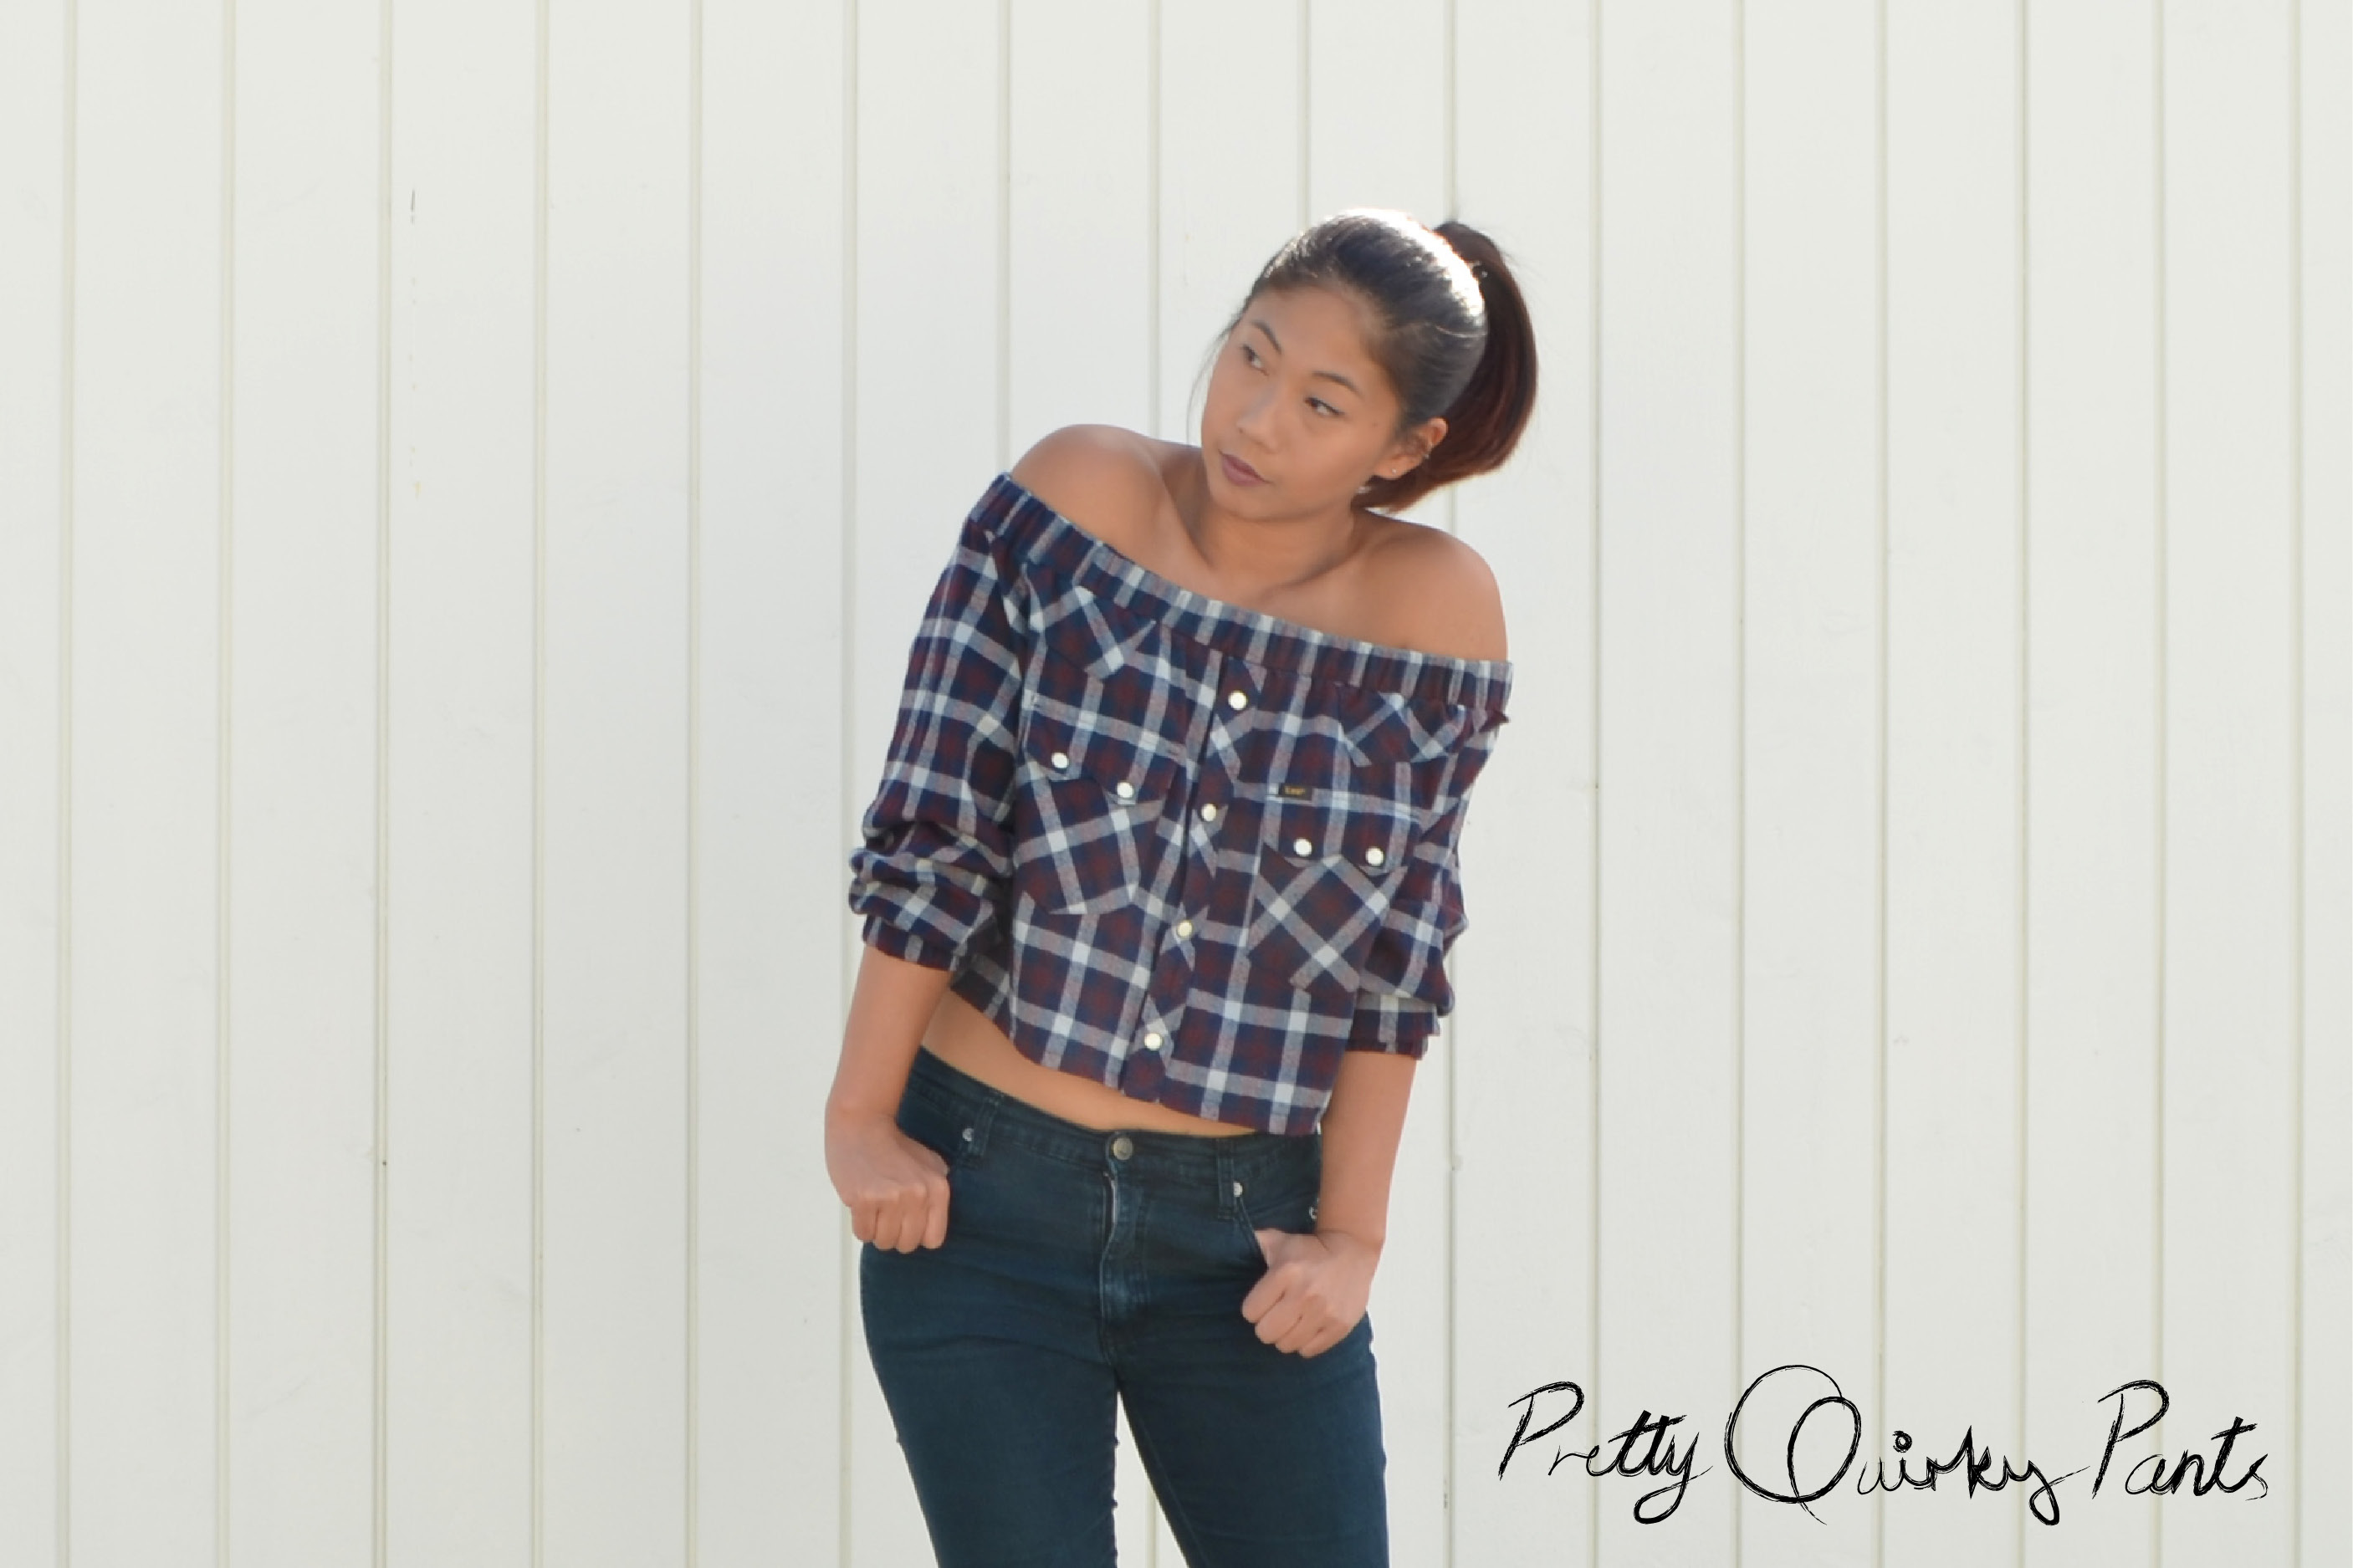 Pretty Quirky Pants Diy Off Shoulder Top Made From An